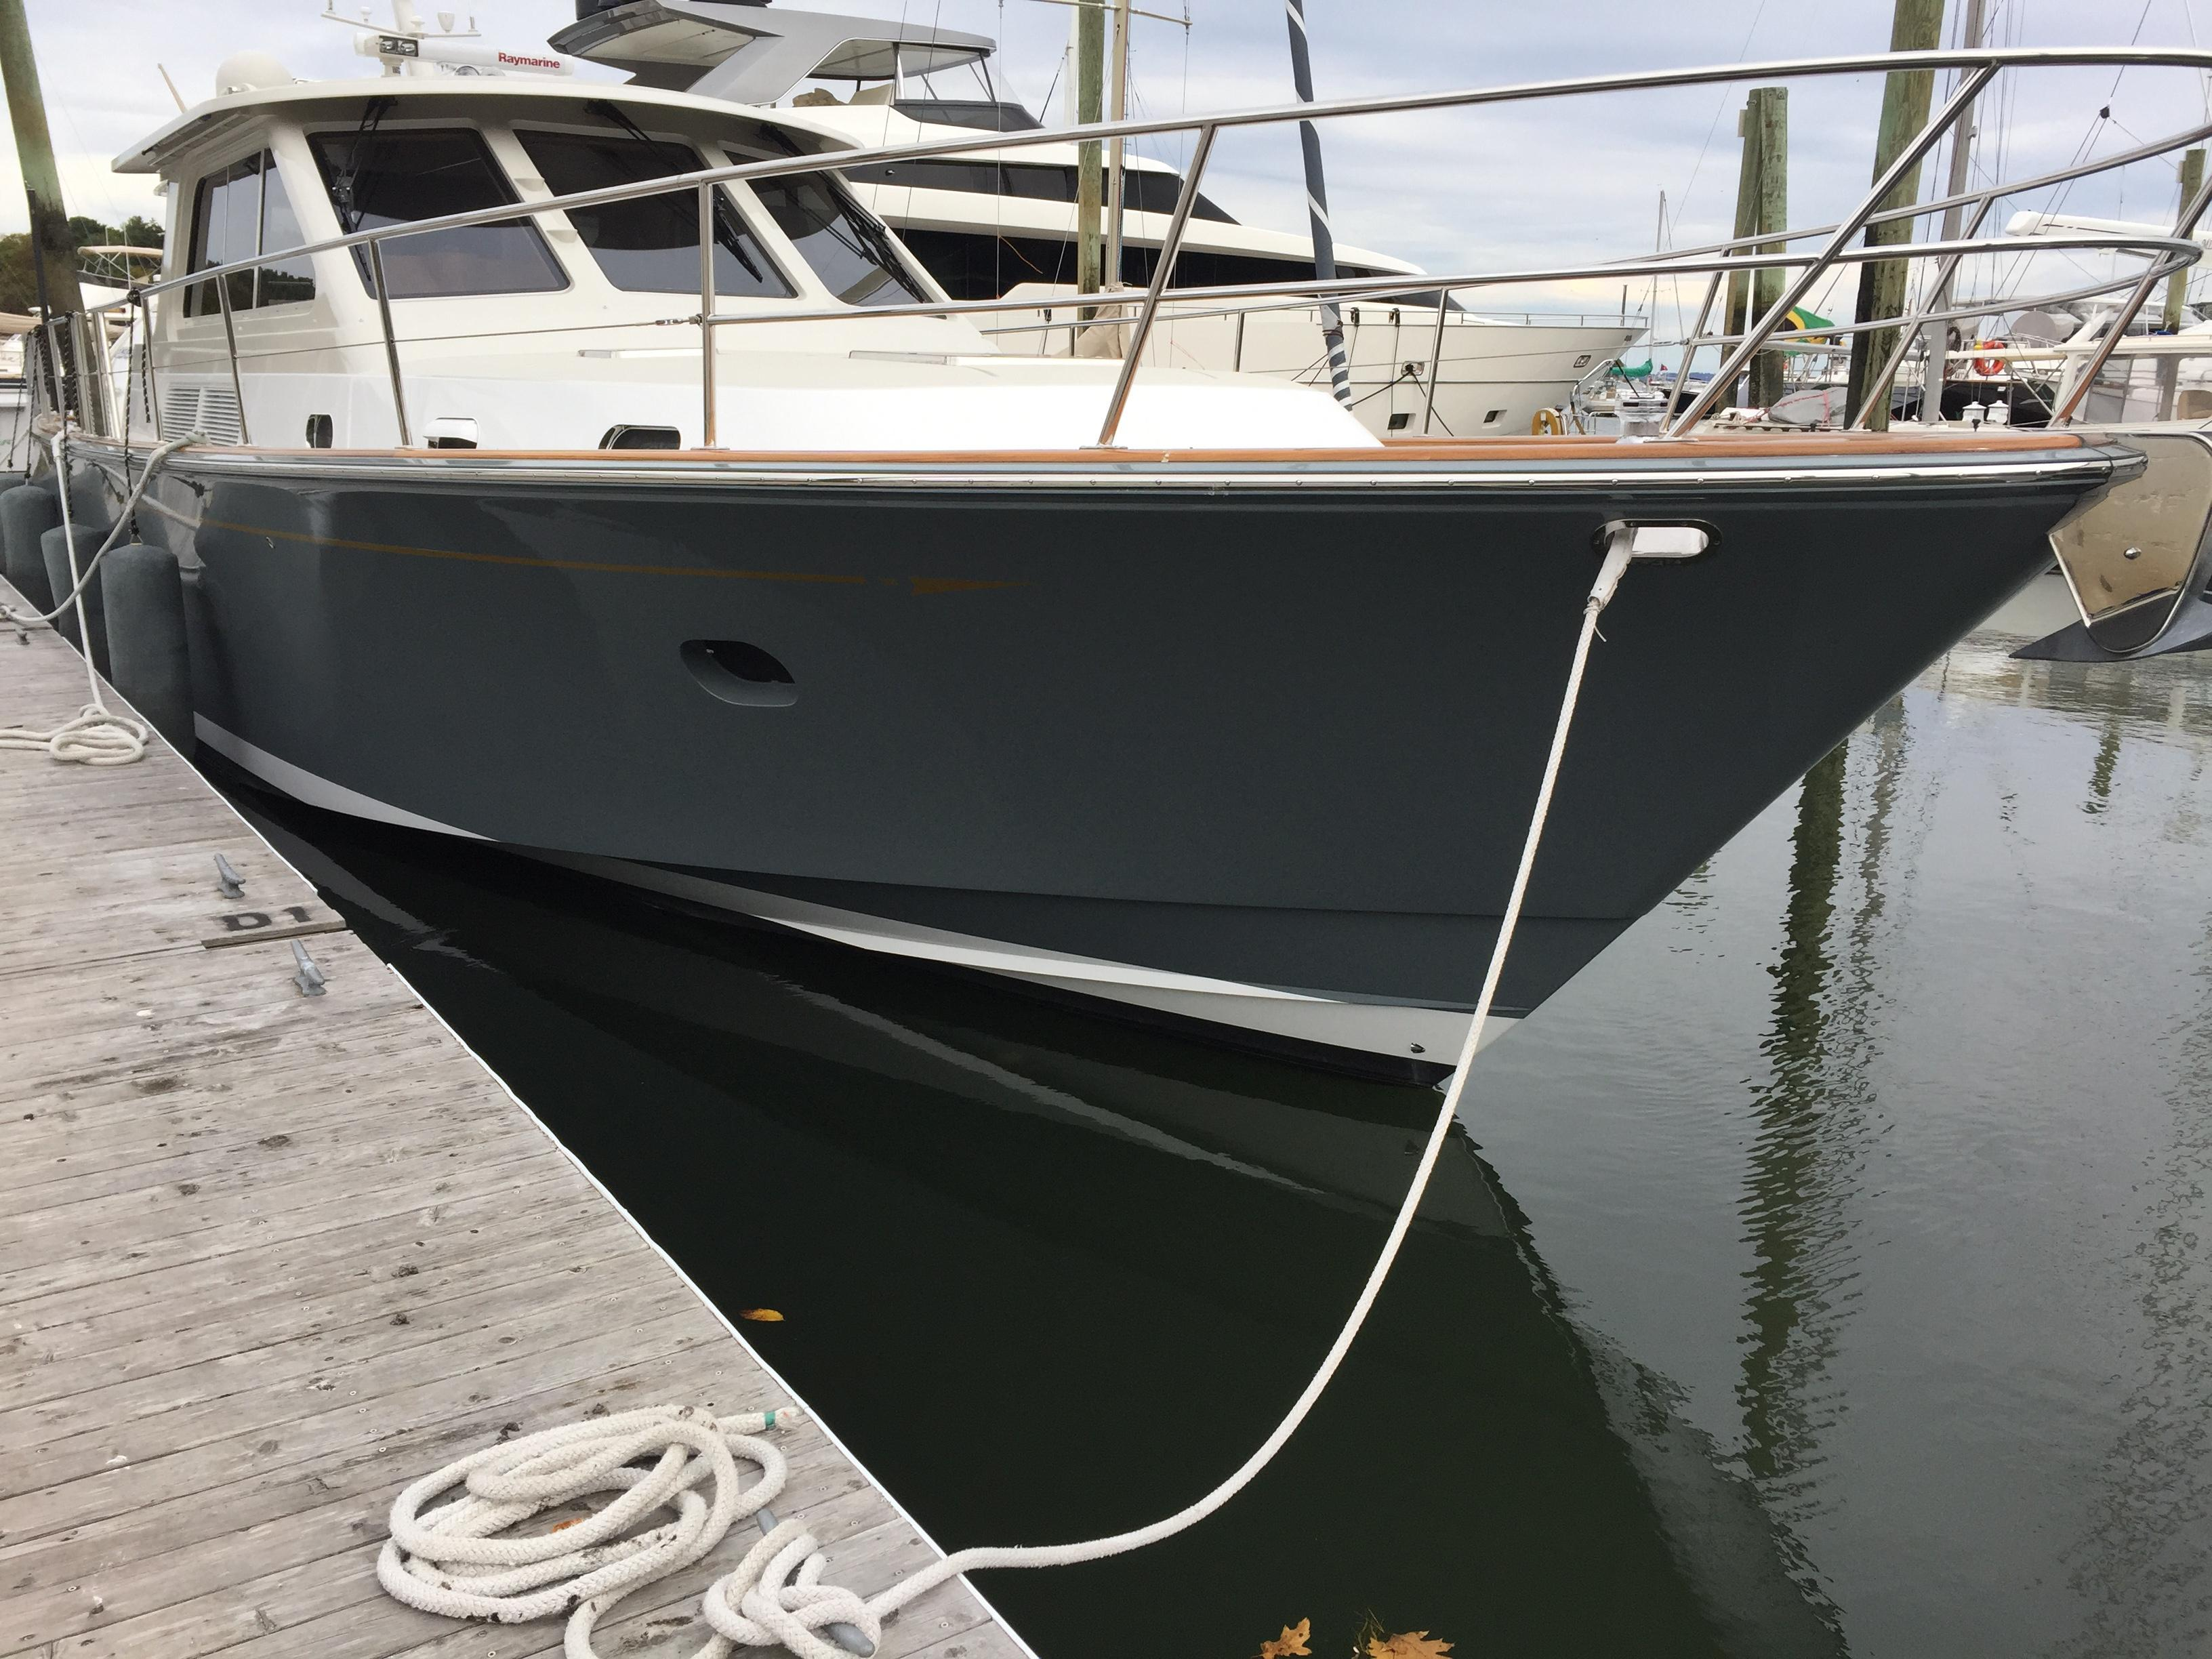 Lyman Boat Electrical Wiring Diagrams Trusted Schematics Diagram Chris Craft Deck Whistler Morse 54 Yachts For Sale Old Reinell Hunt